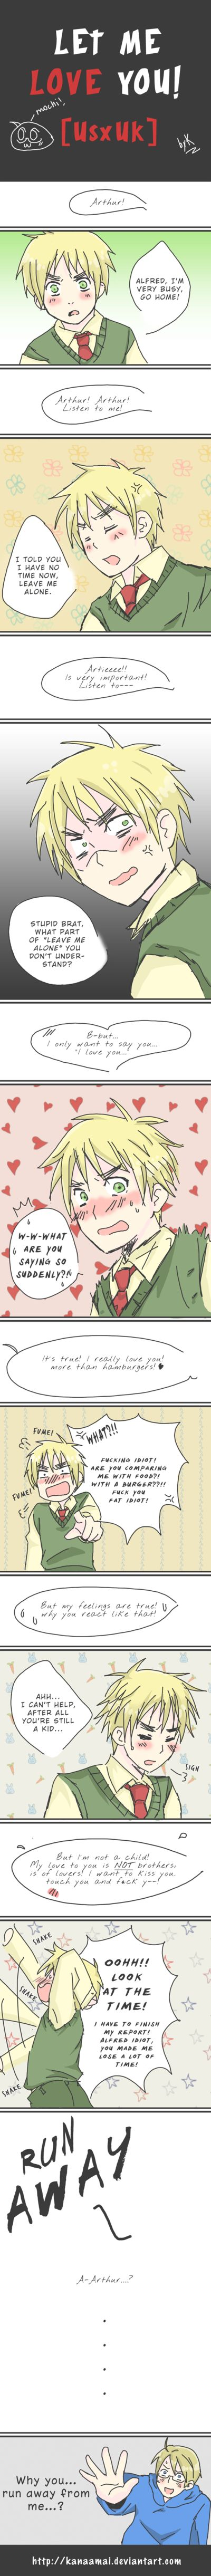 [APH] Let me Love you! [UsUk] by KanaAmai.deviantart.com on @deviantART